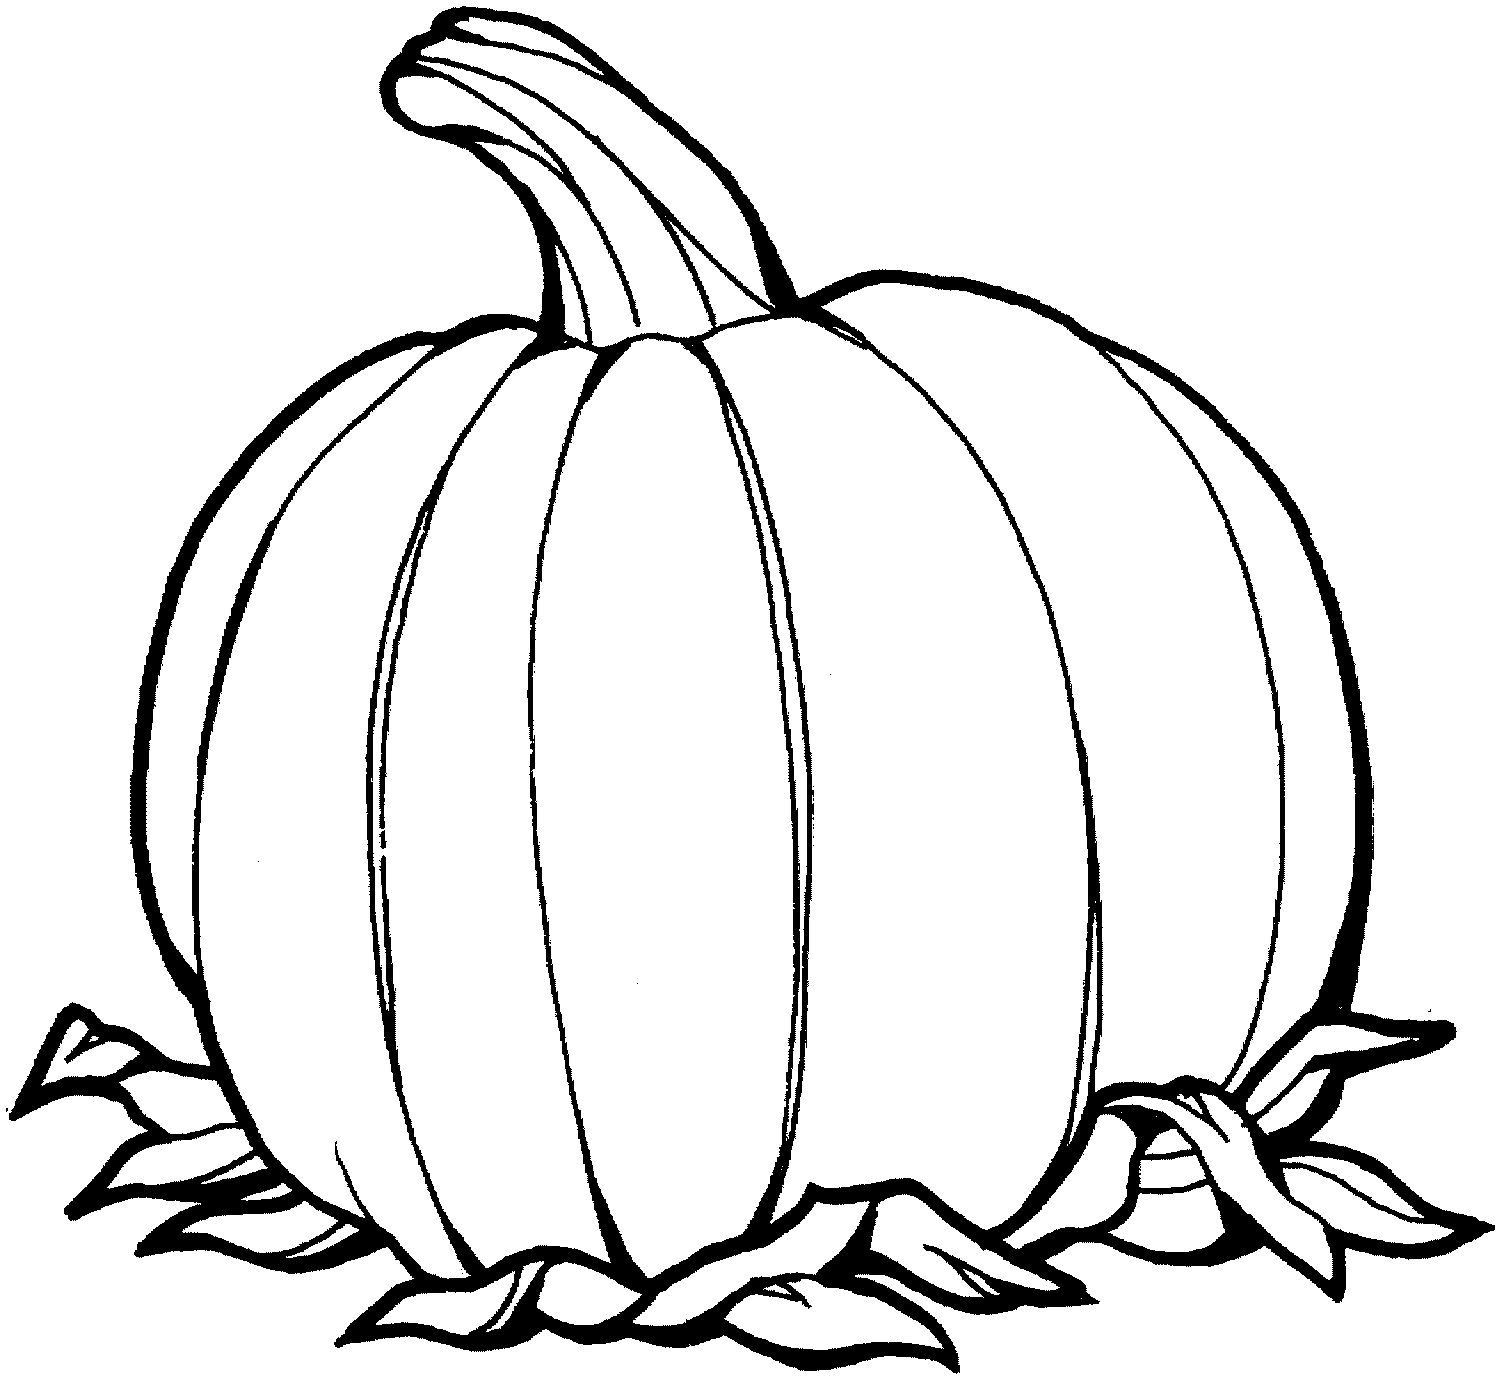 squash coloring page vegetables coloring pages crafts and worksheets for coloring squash page